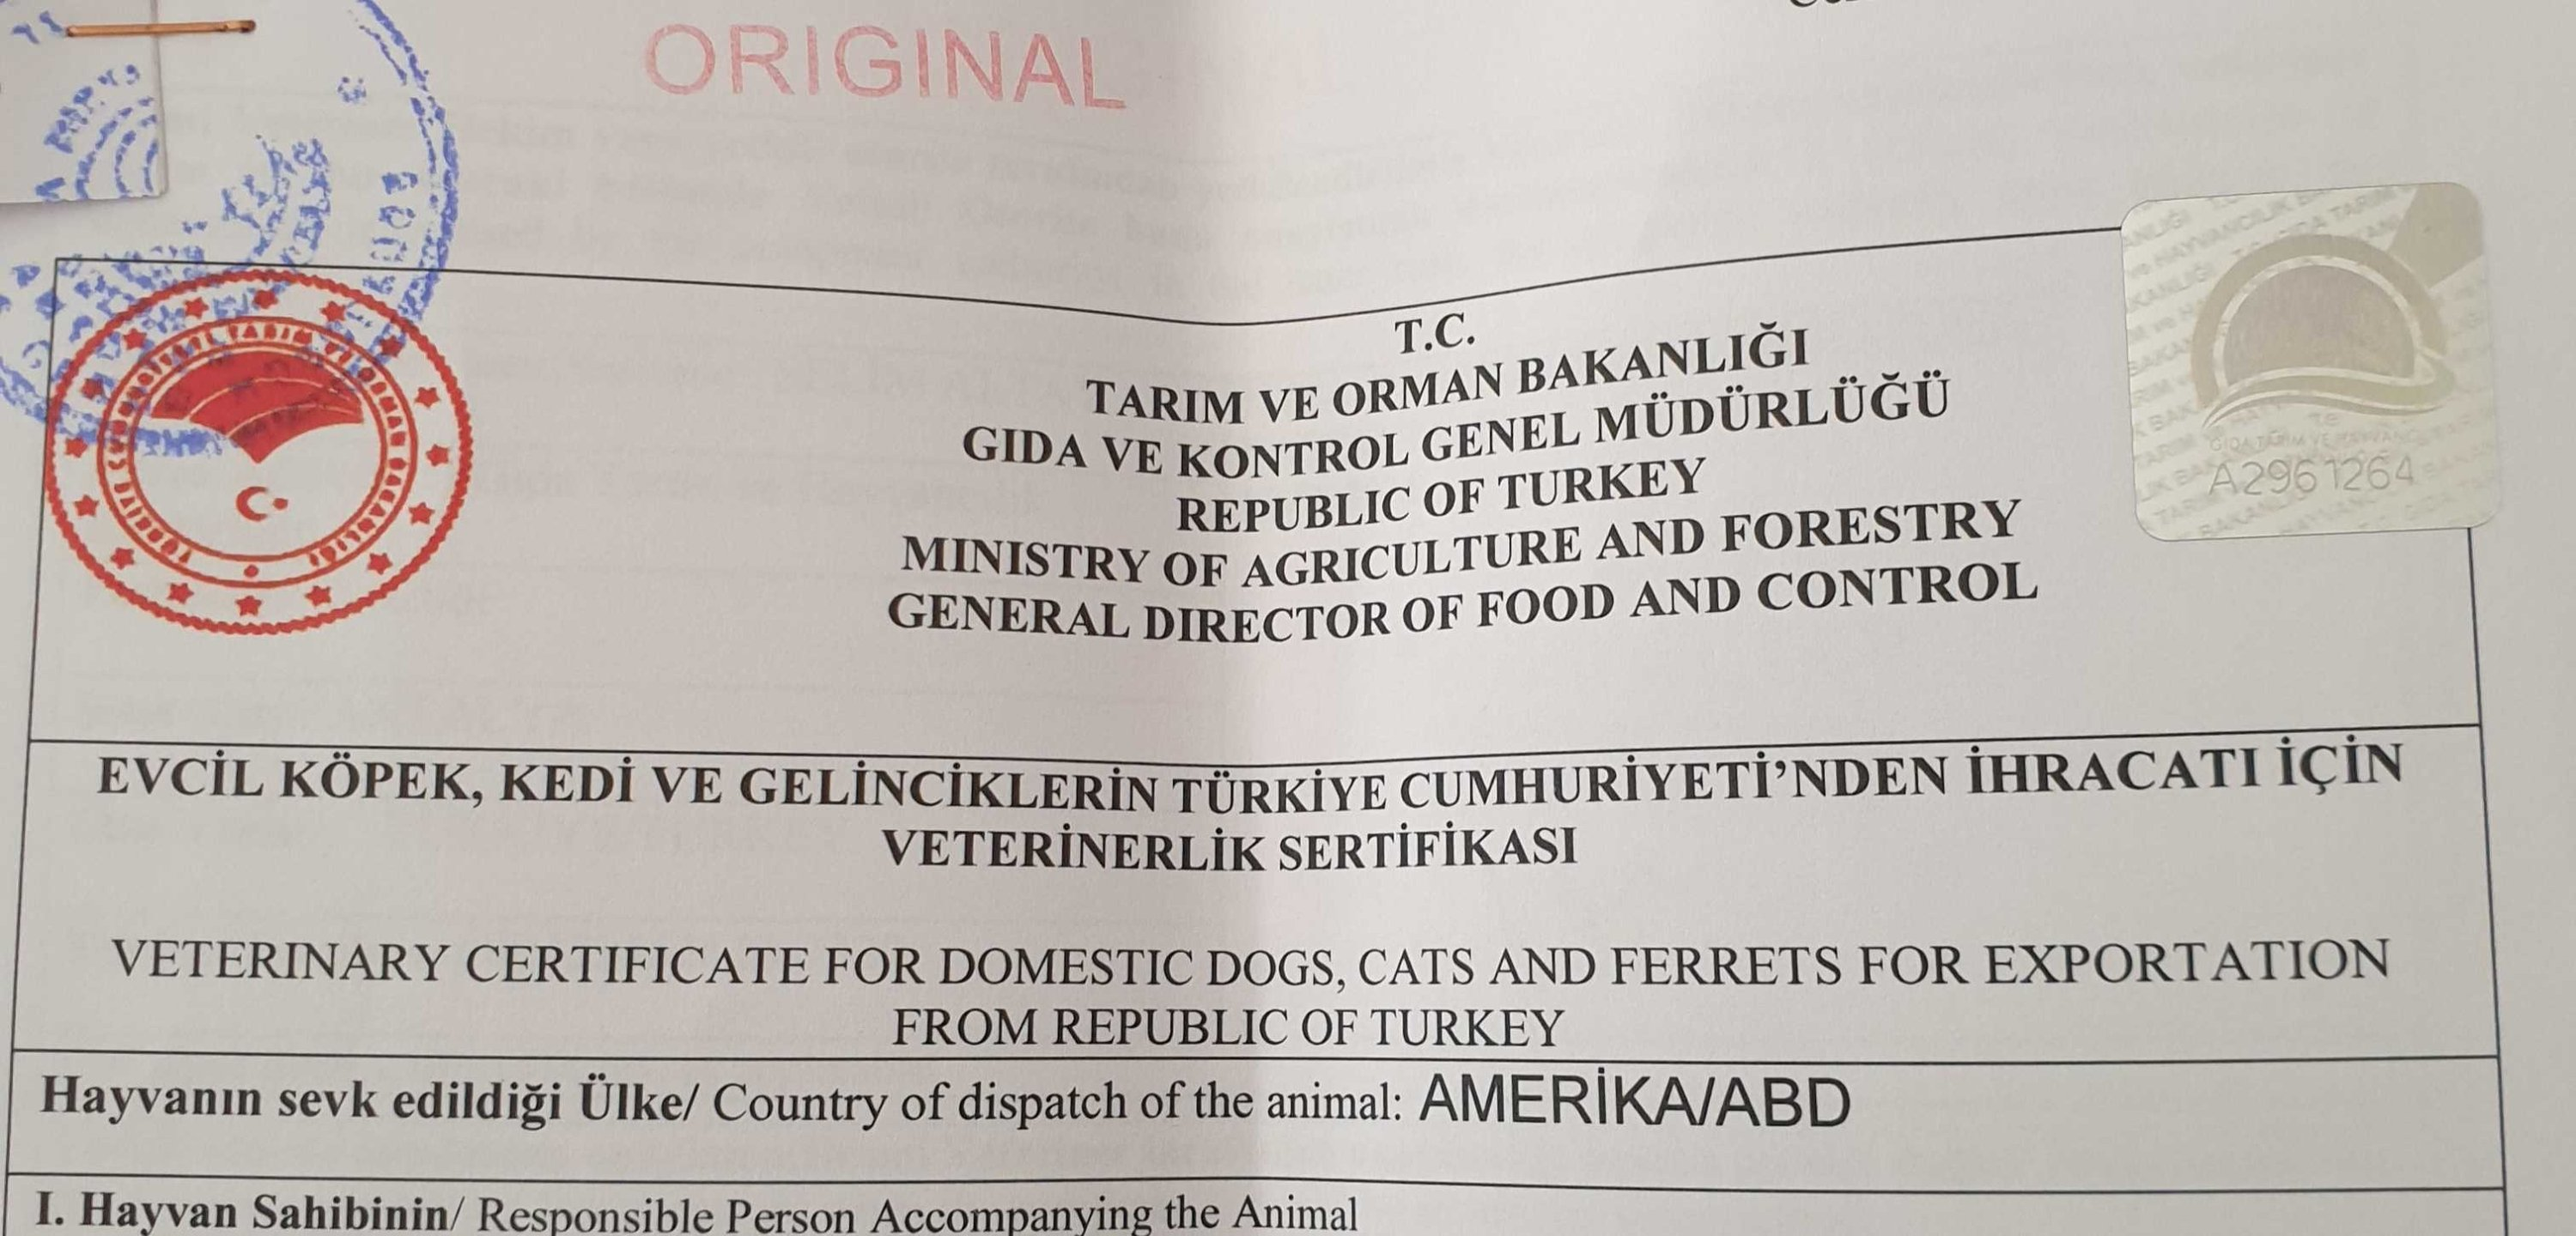 A Veterinary Certificate for Domestic Dogs, Cats and Ferrets for Exportation from the Republic of Turkey. (Daily Sabah Photo)